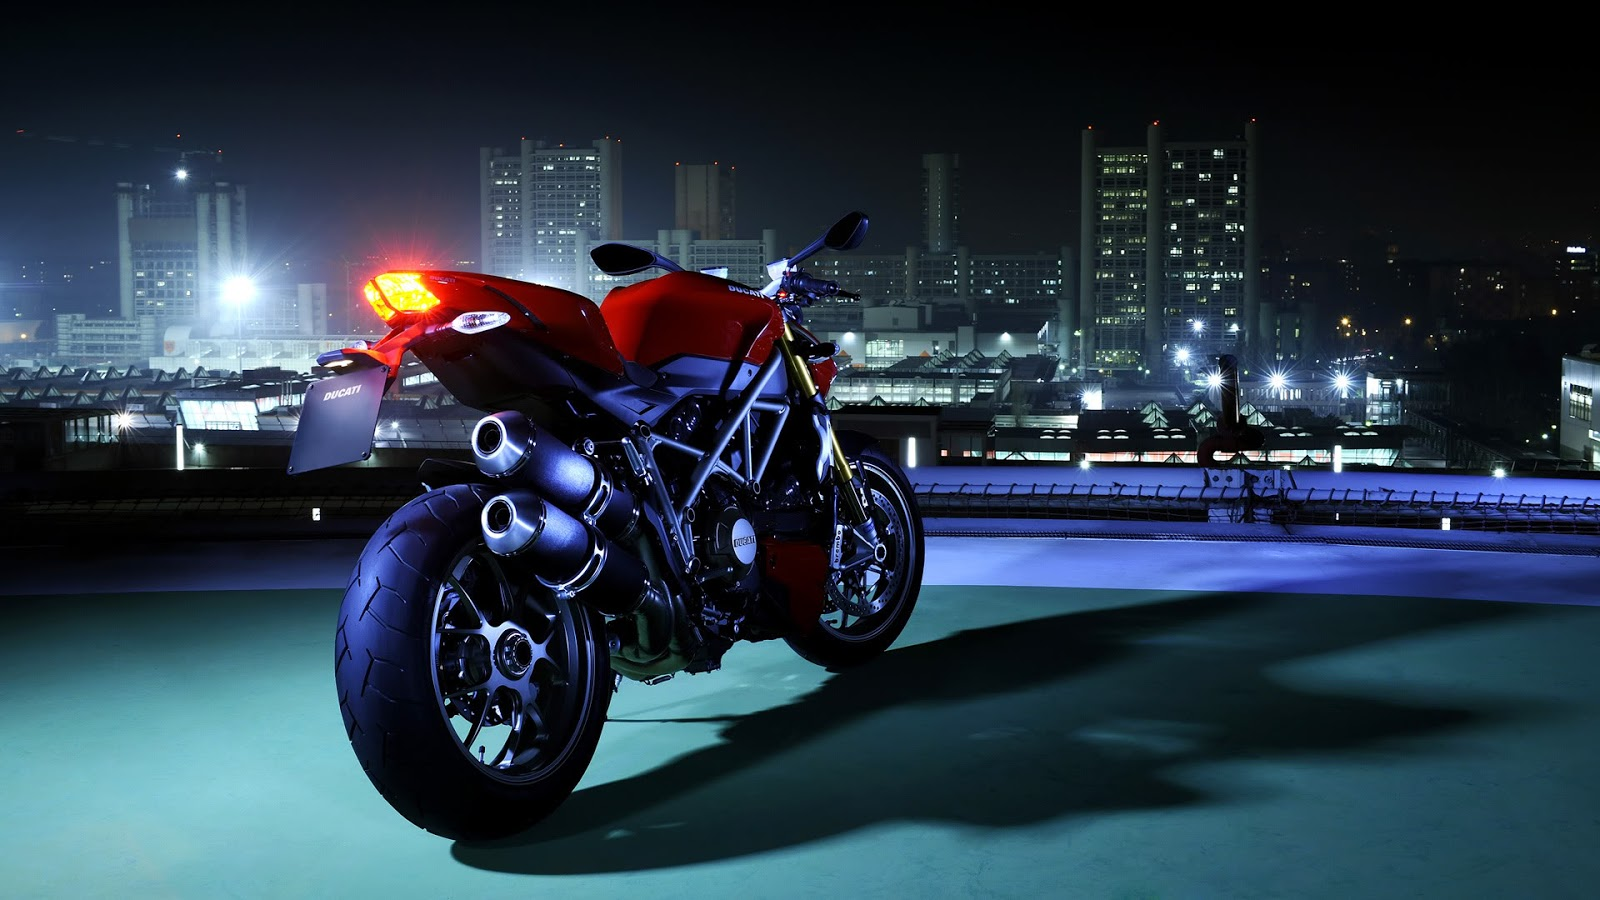 Hd Wallpapers Hd Backgrounds: Ducati HD Wallpapers